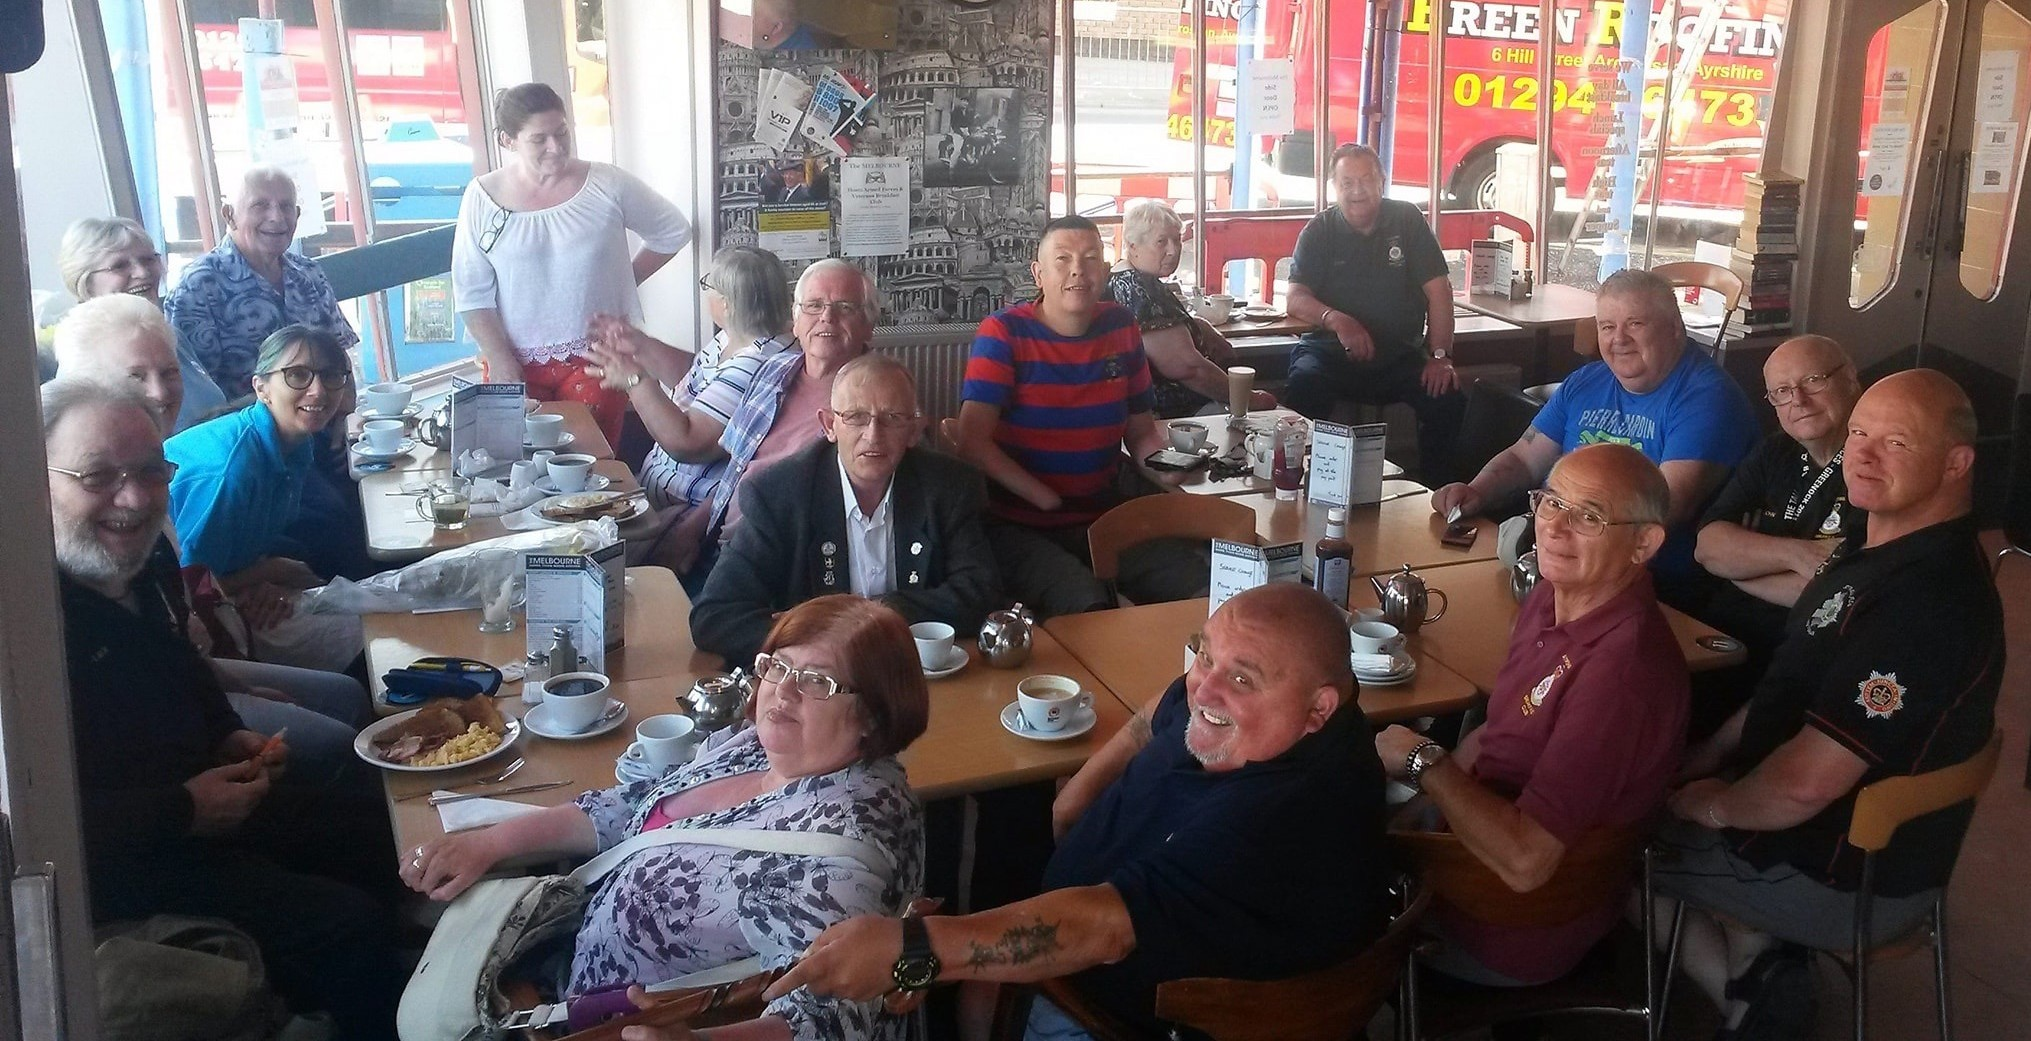 Veterans at the Breakfast Club in the Melbourne Cafe, Saltcoats.